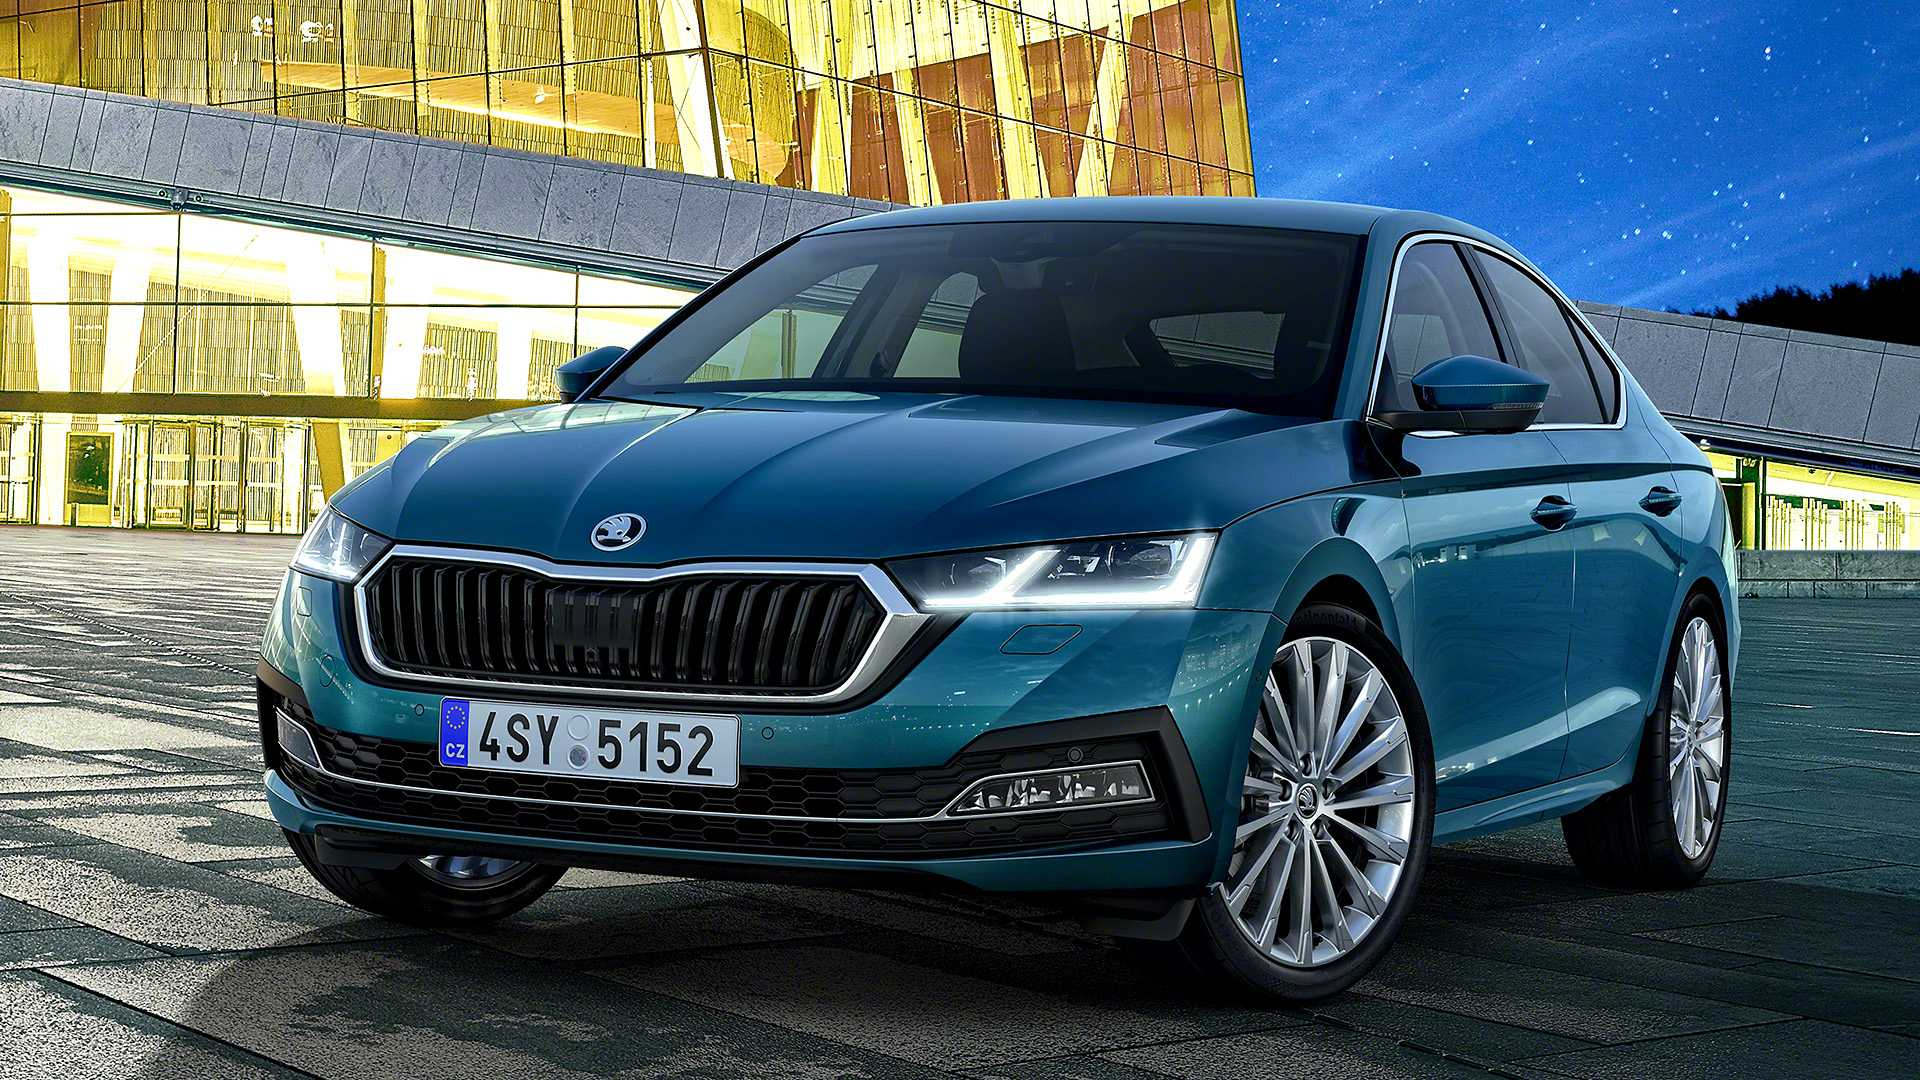 For a long time now, the latest Skoda Octavia had been available exclusively as the pricey First Edition spec with its 1.5L TSI engine churning out 150 hp (112 kW). This ends now with a more affordable version coming out.